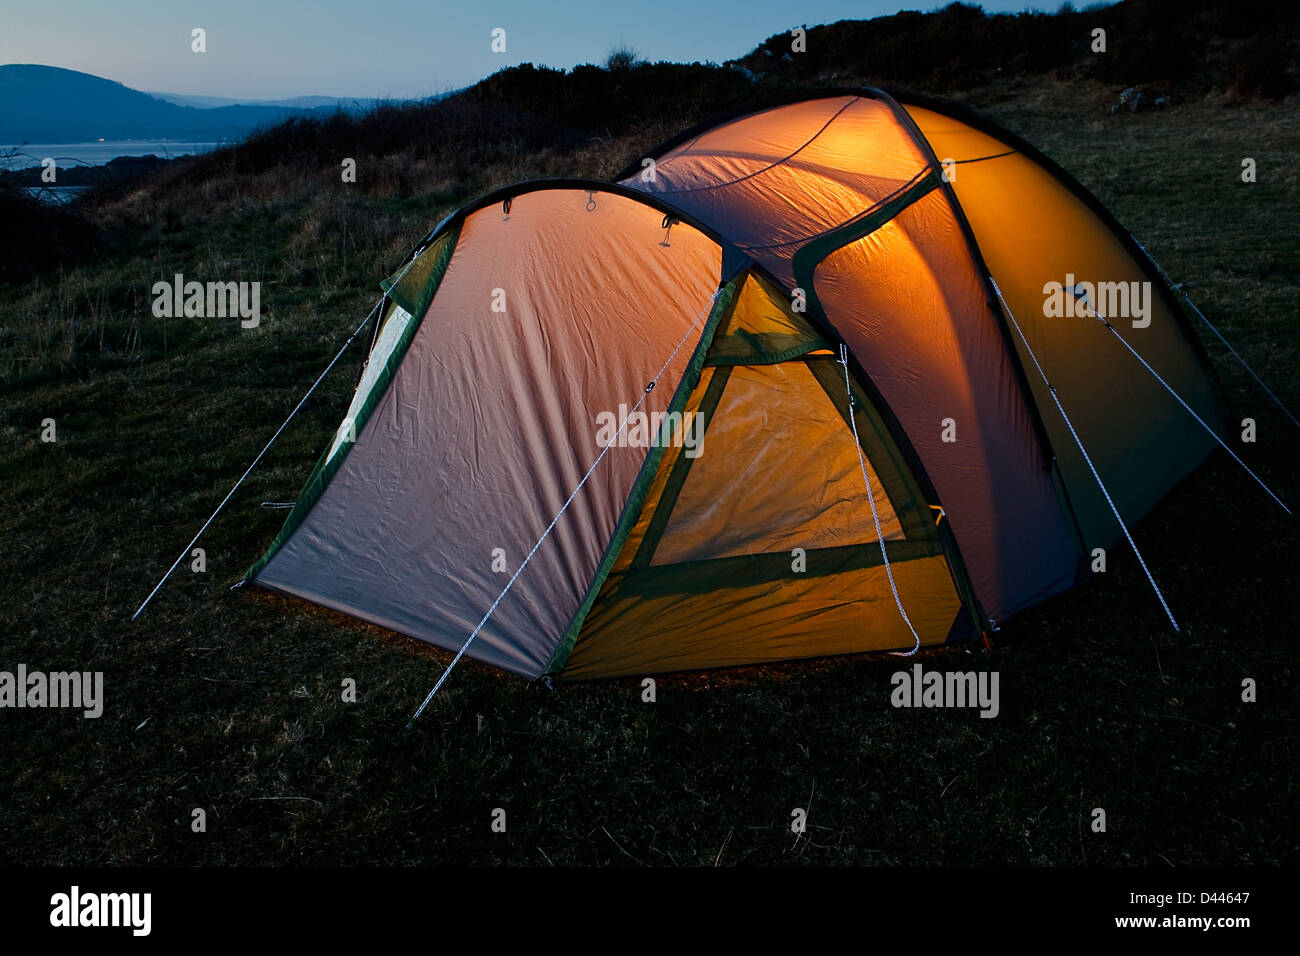 Nylon Tent set up for a Camping holiday in the great outdoors ready for a cosy night under the stars Stock Photo